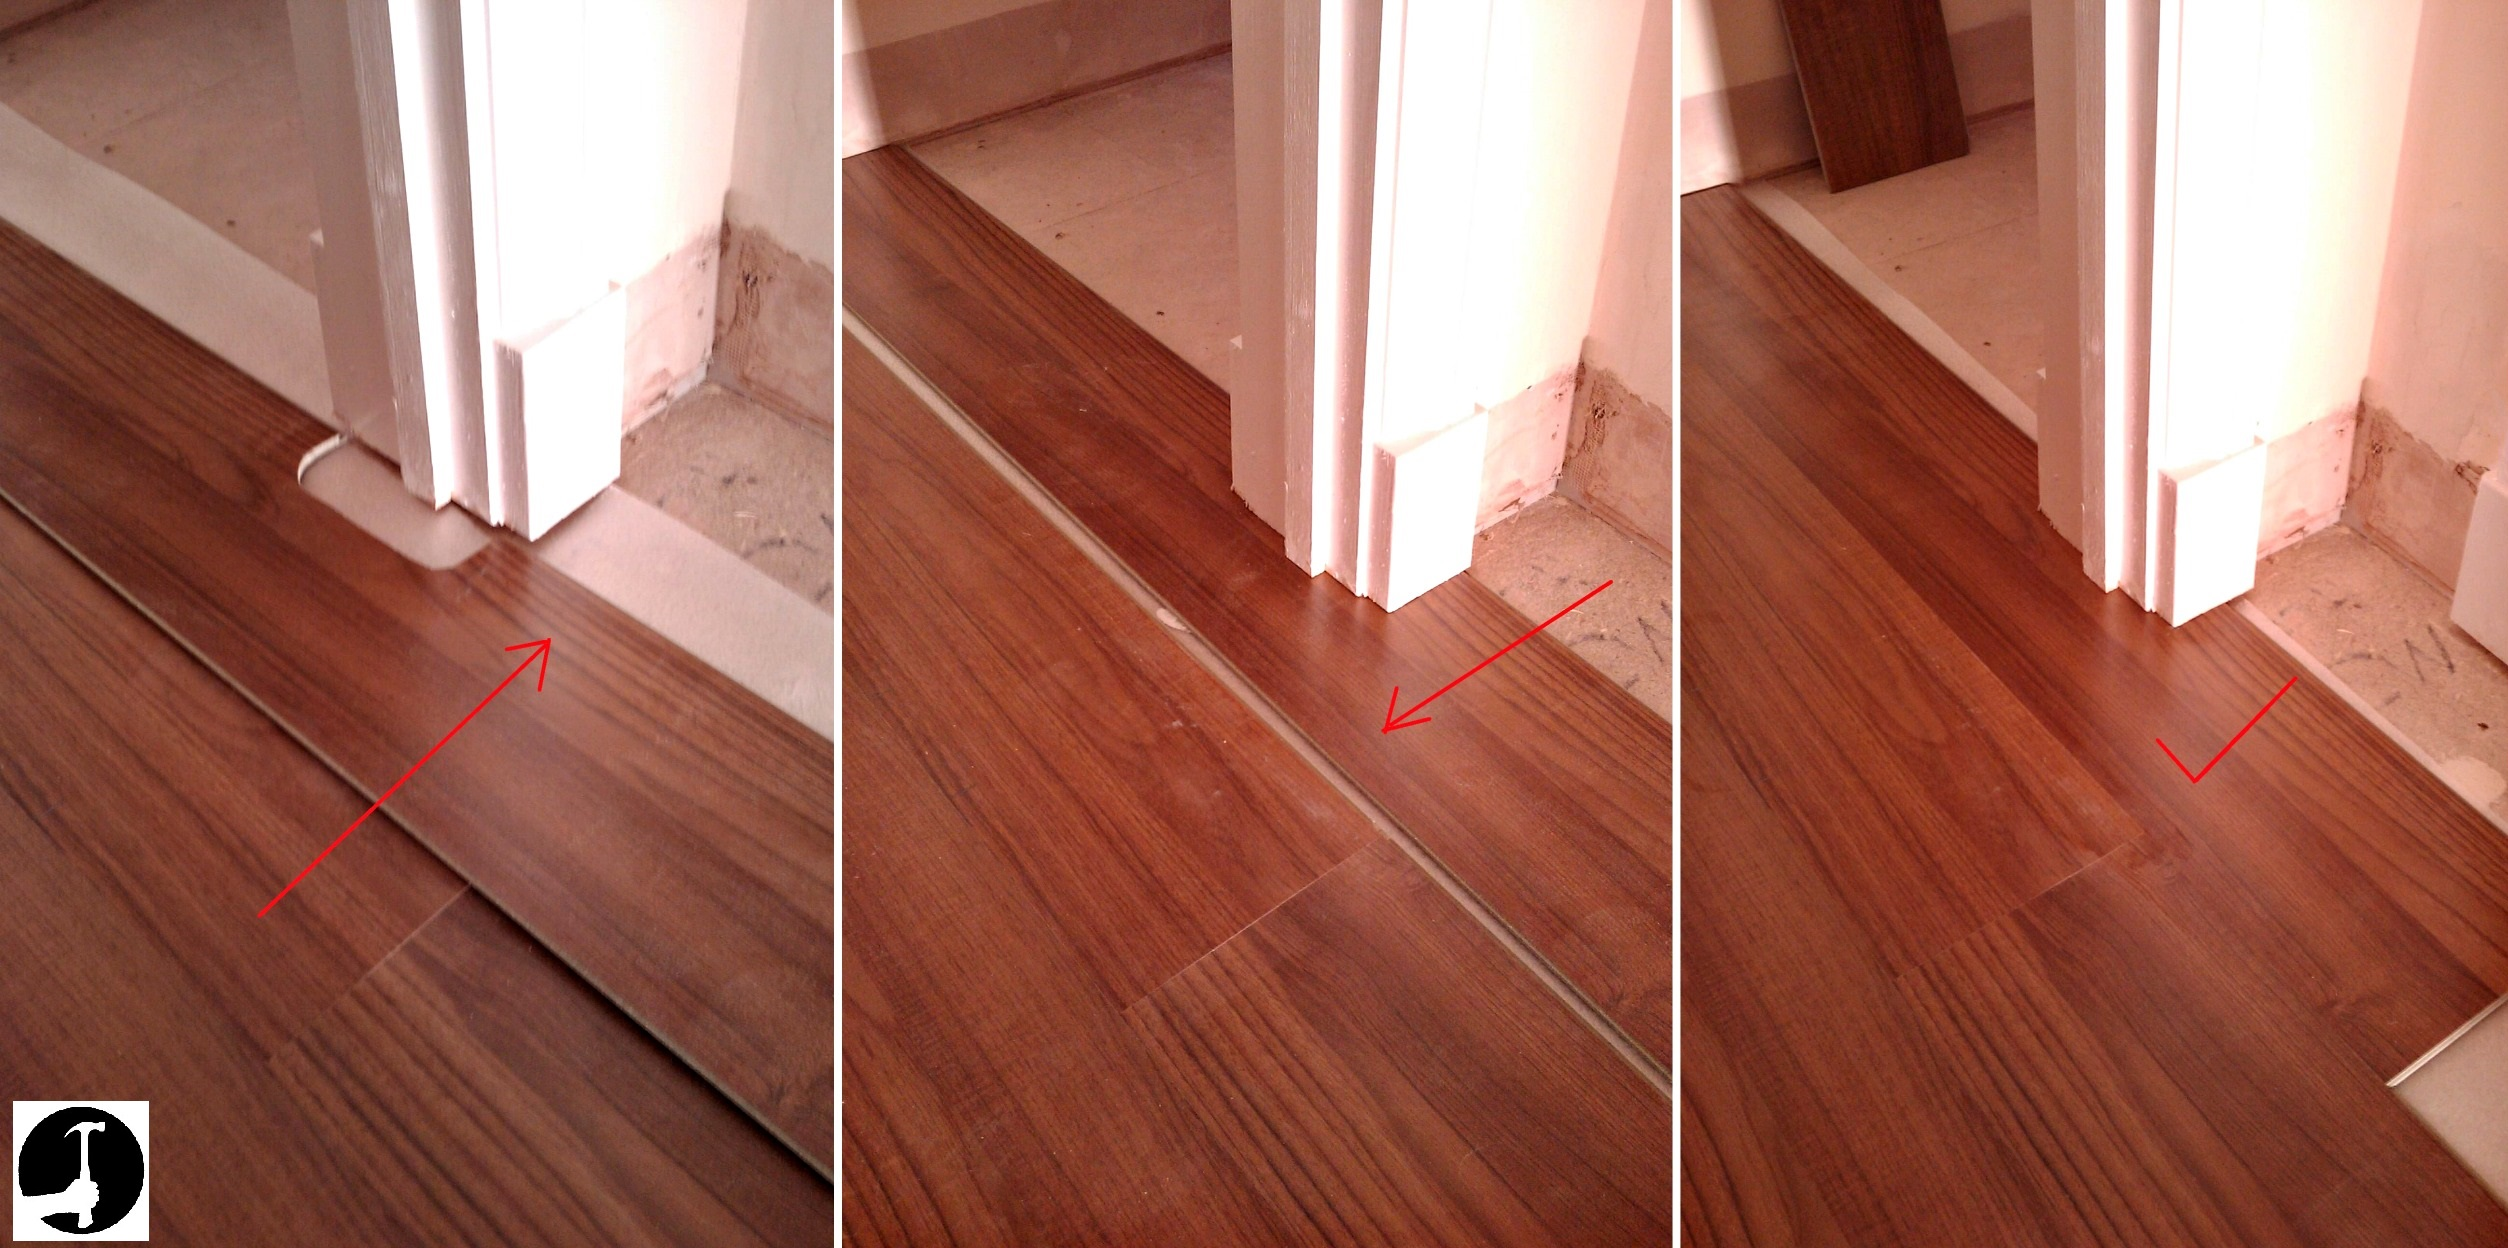 How To Lay Laminate In A Doorway For Perfect Flooring Transitions